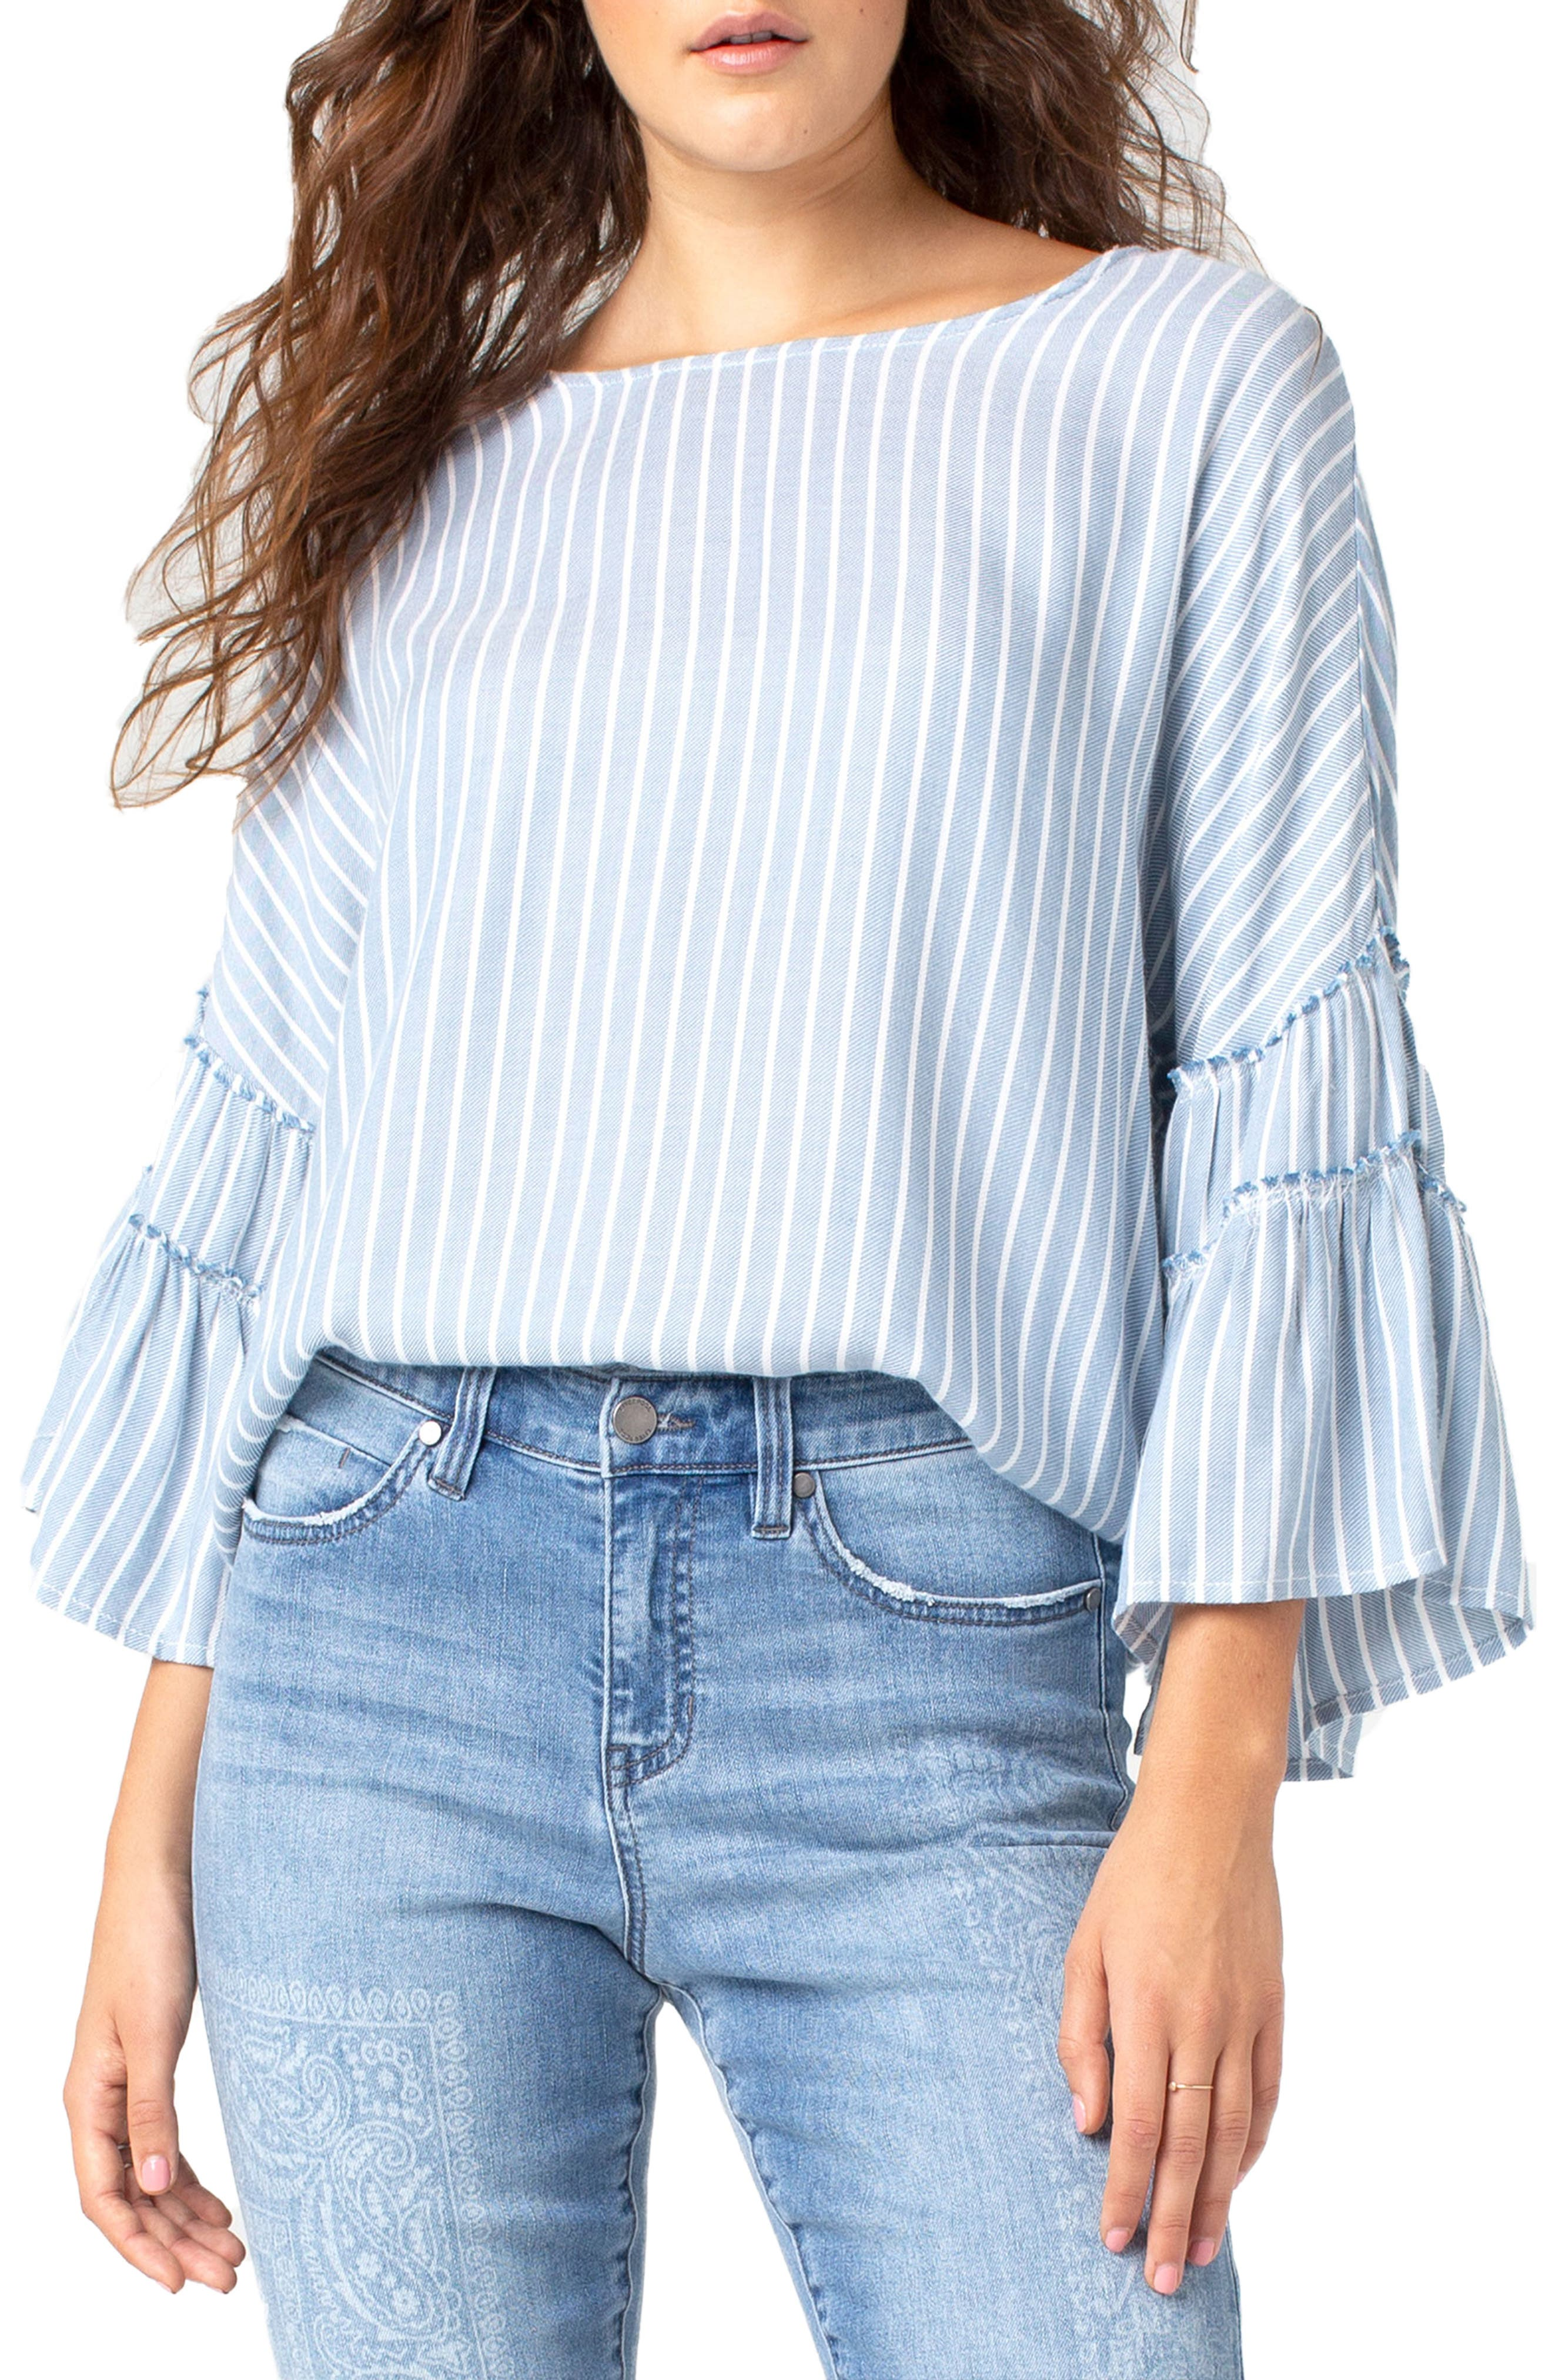 Ruffle Sleeve Top by Liverpool